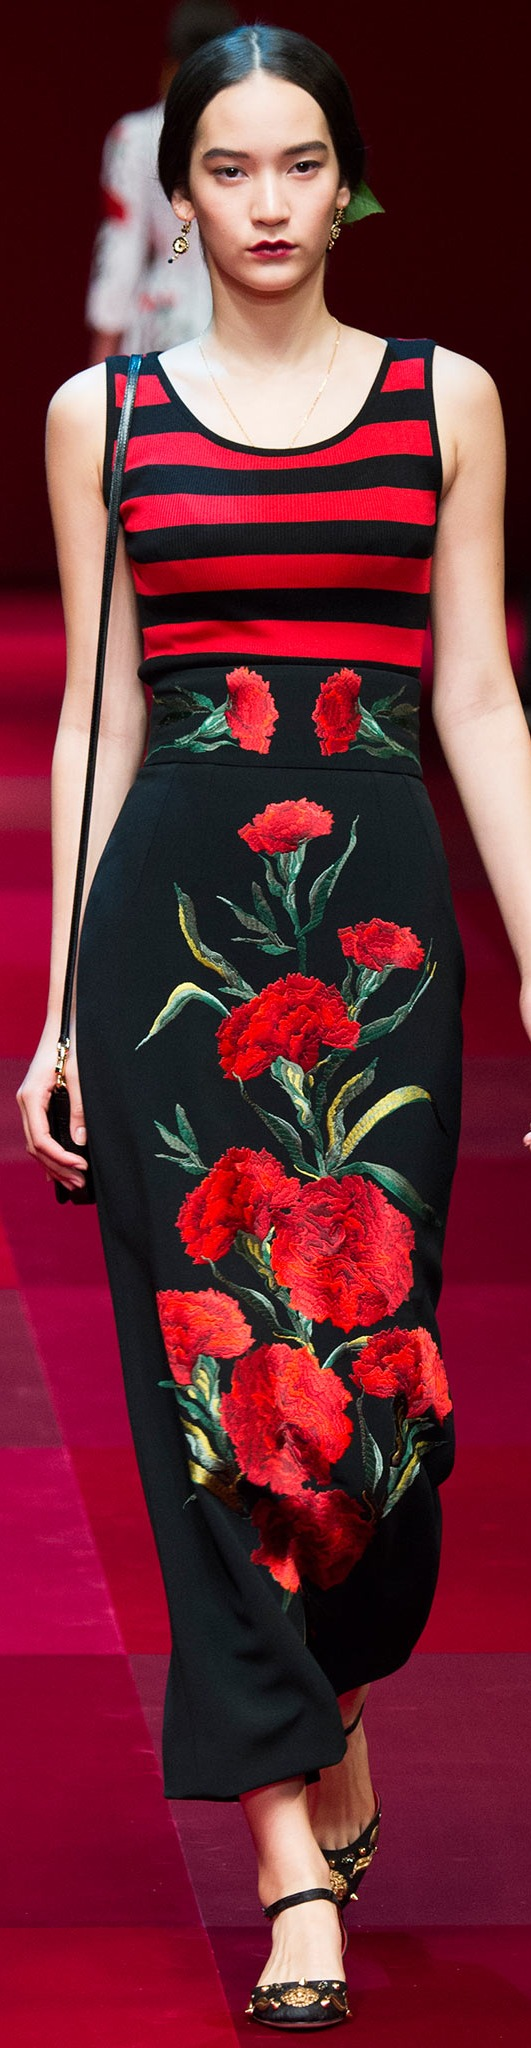 Dolce & Gabbana Collection Spring 2015 | The House of Beccaria~